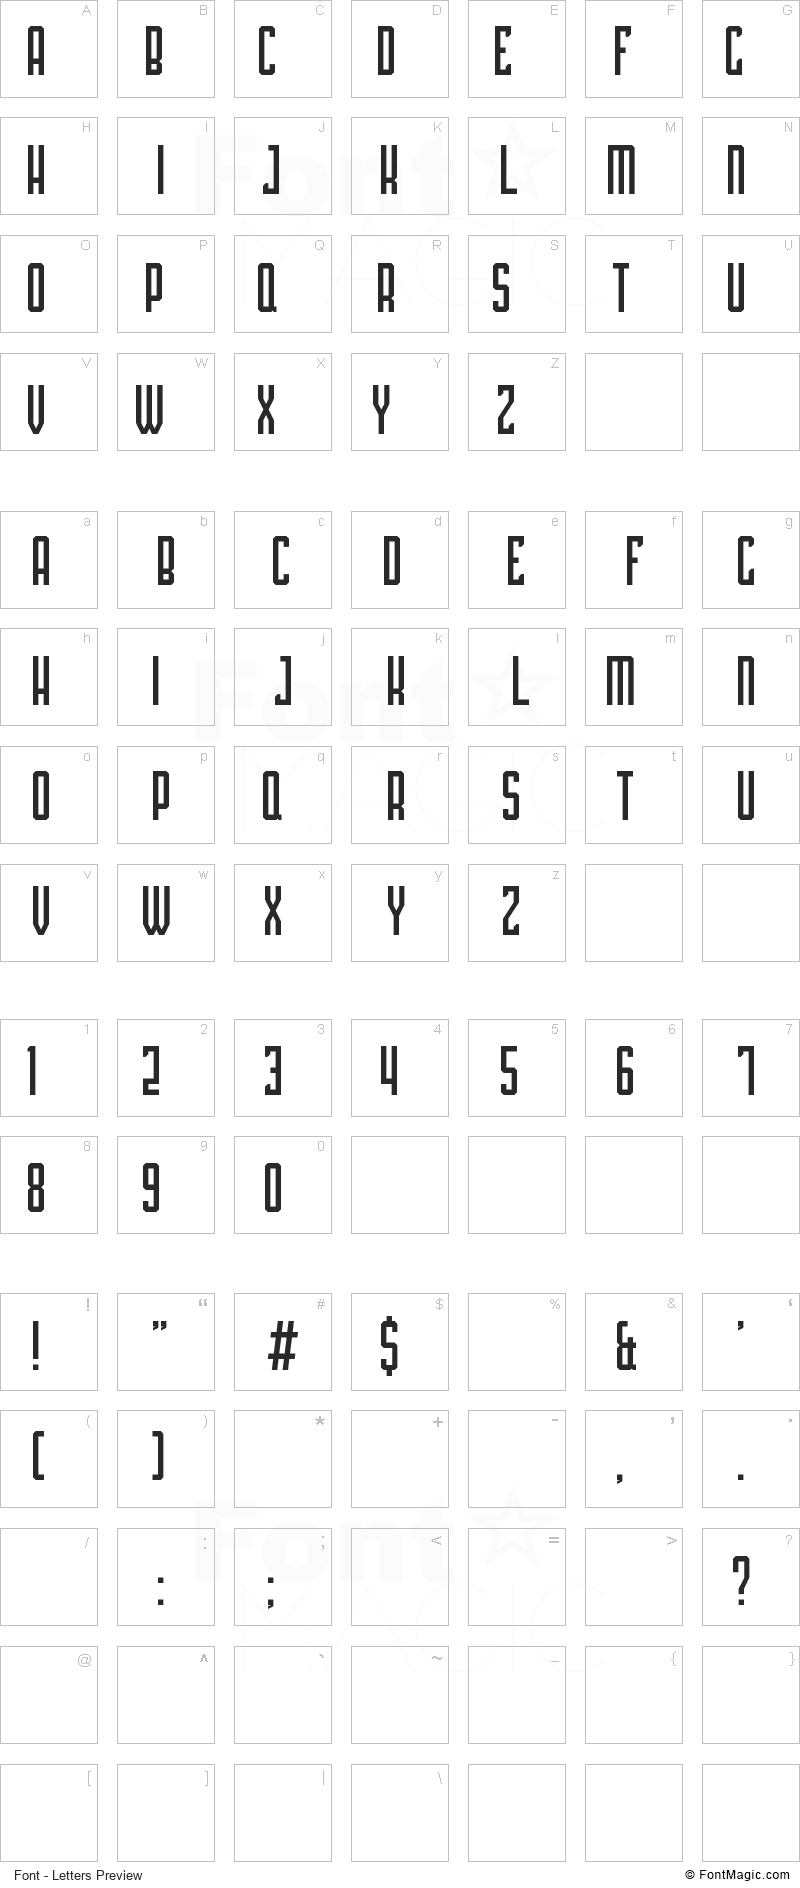 Platina Font - All Latters Preview Chart